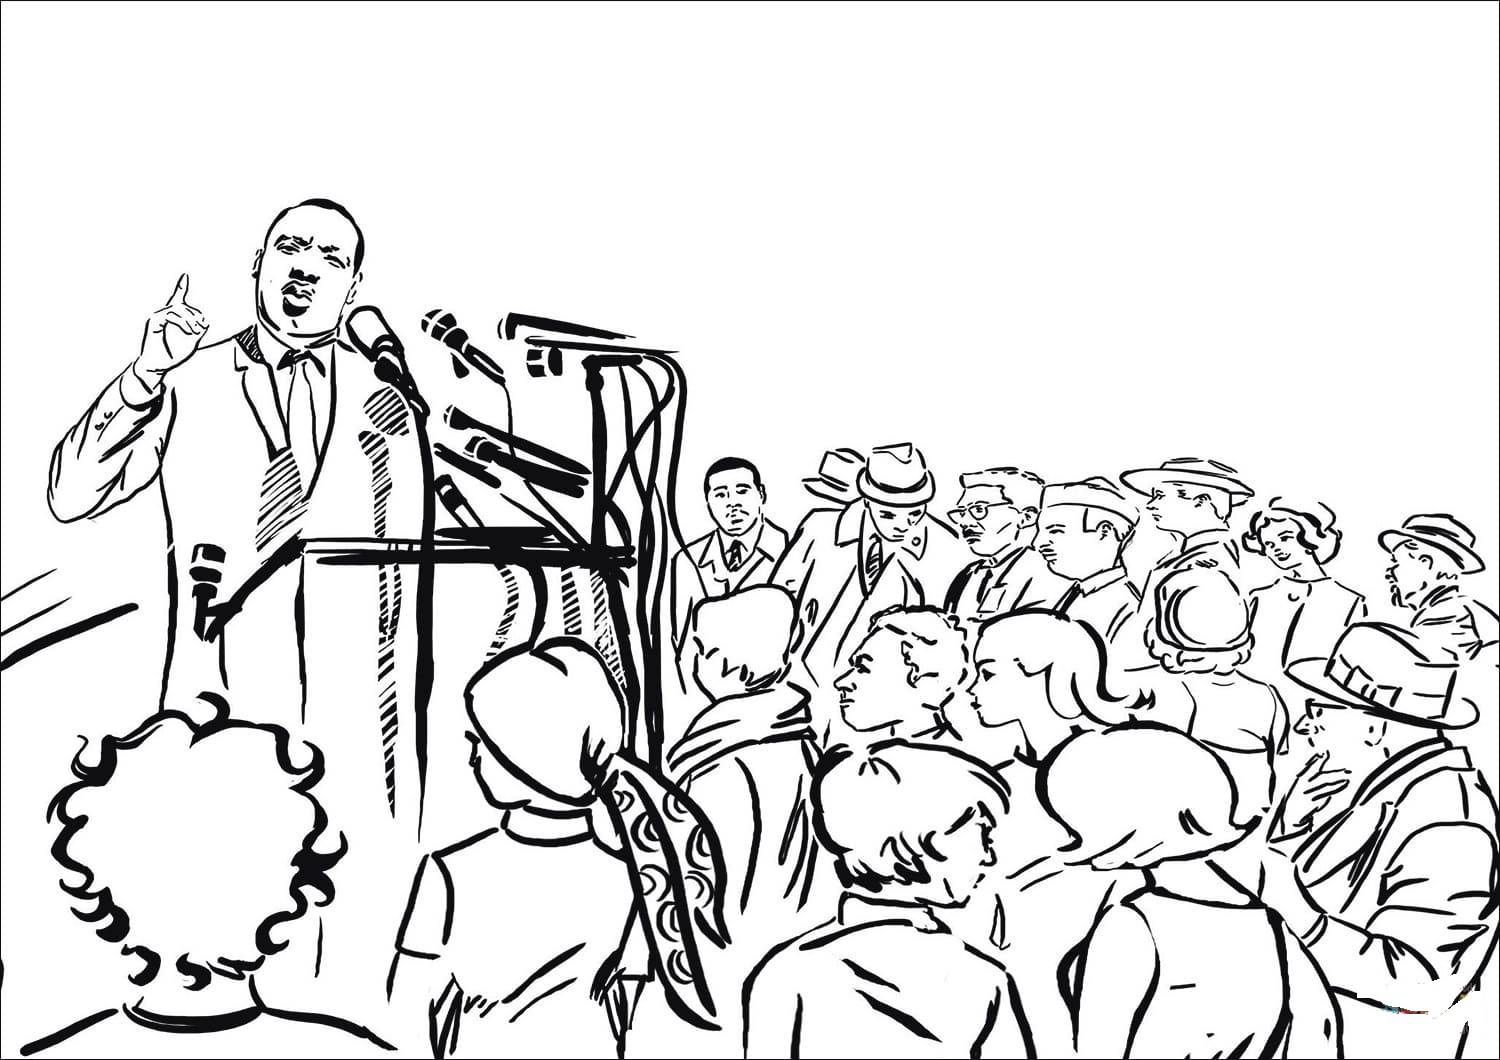 Martin Luther King Jr Coloring Pages - GetColoringPages.com | 1060x1500